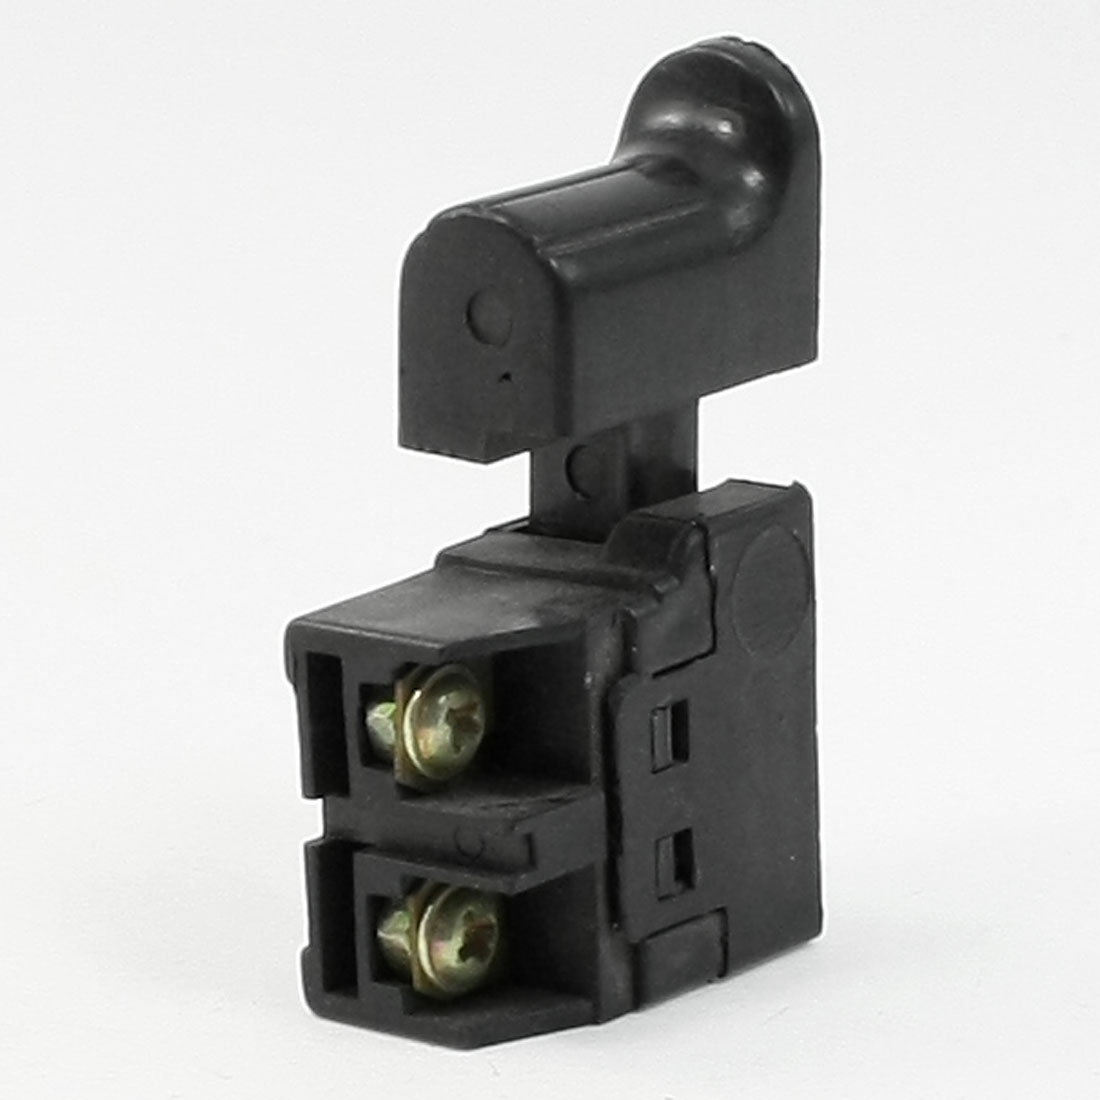 AC 250V/7.5A 125V/15A SPST Momentary Trigger Switch for Hand Electric Drill